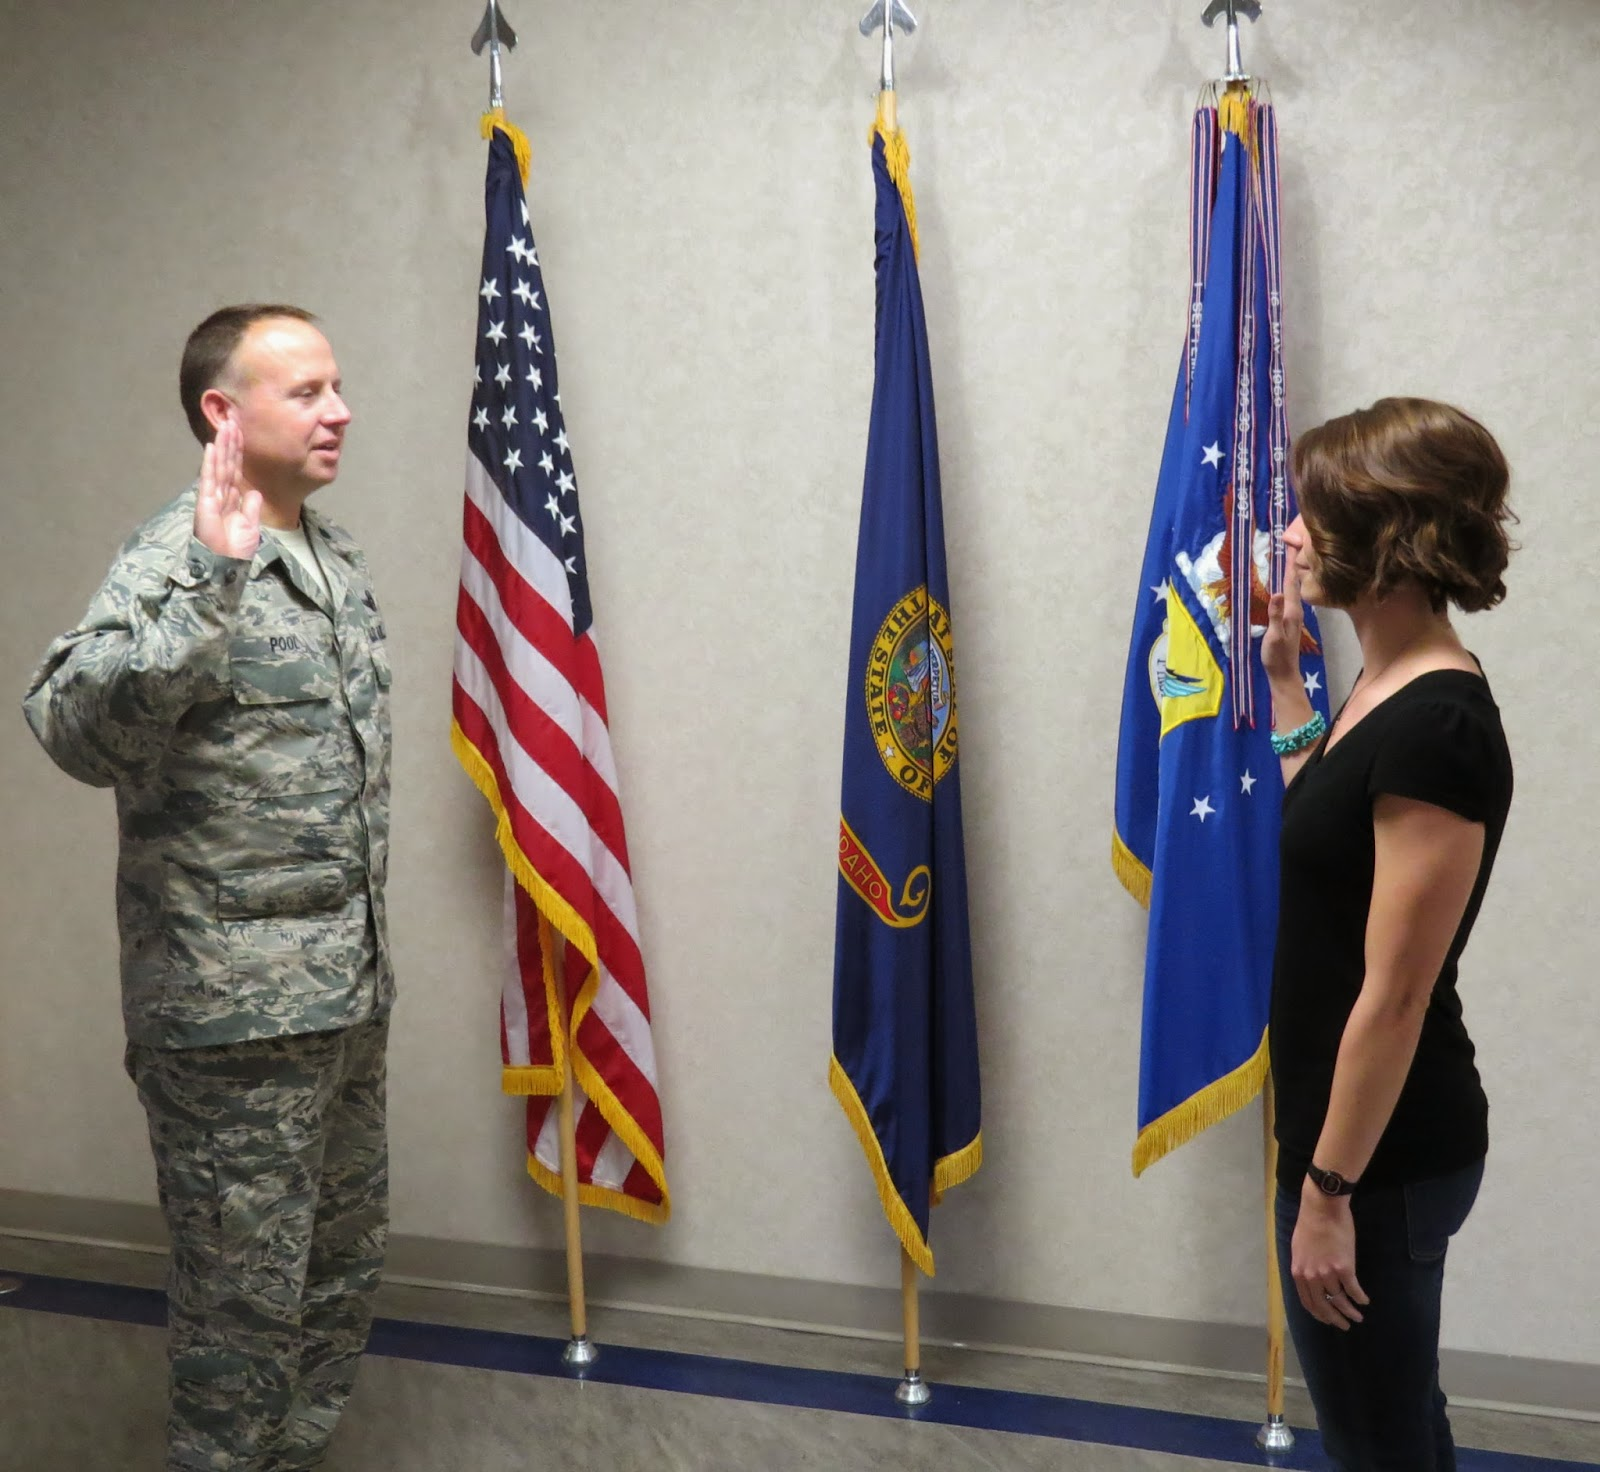 Idaho Air National Guard, 124 Fighter Wing, Air National Guard Enlistment